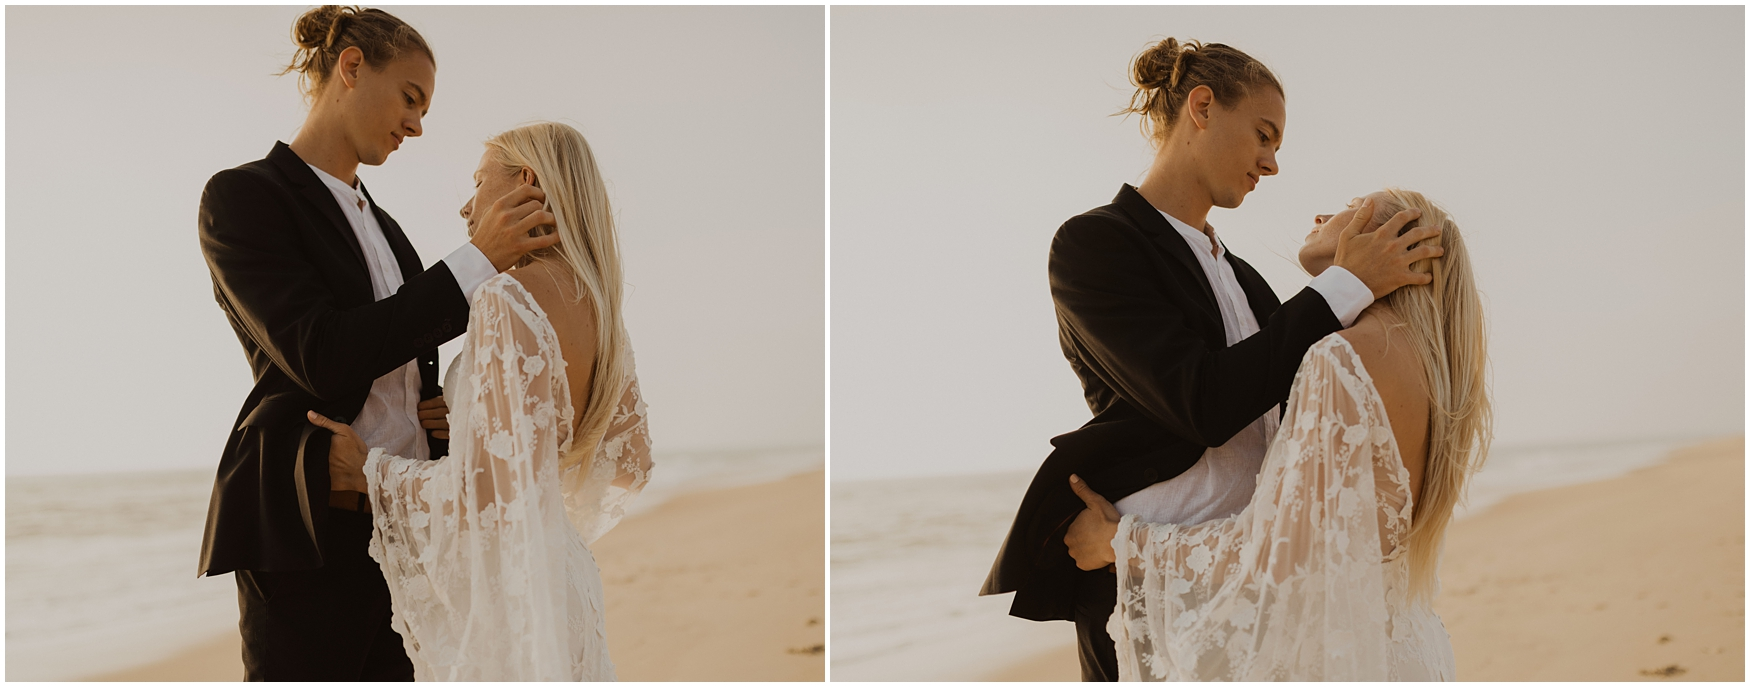 Hannah_Baldwin_Photography_Virginia_Beach_Elopement_Sunrise_0181.jpg